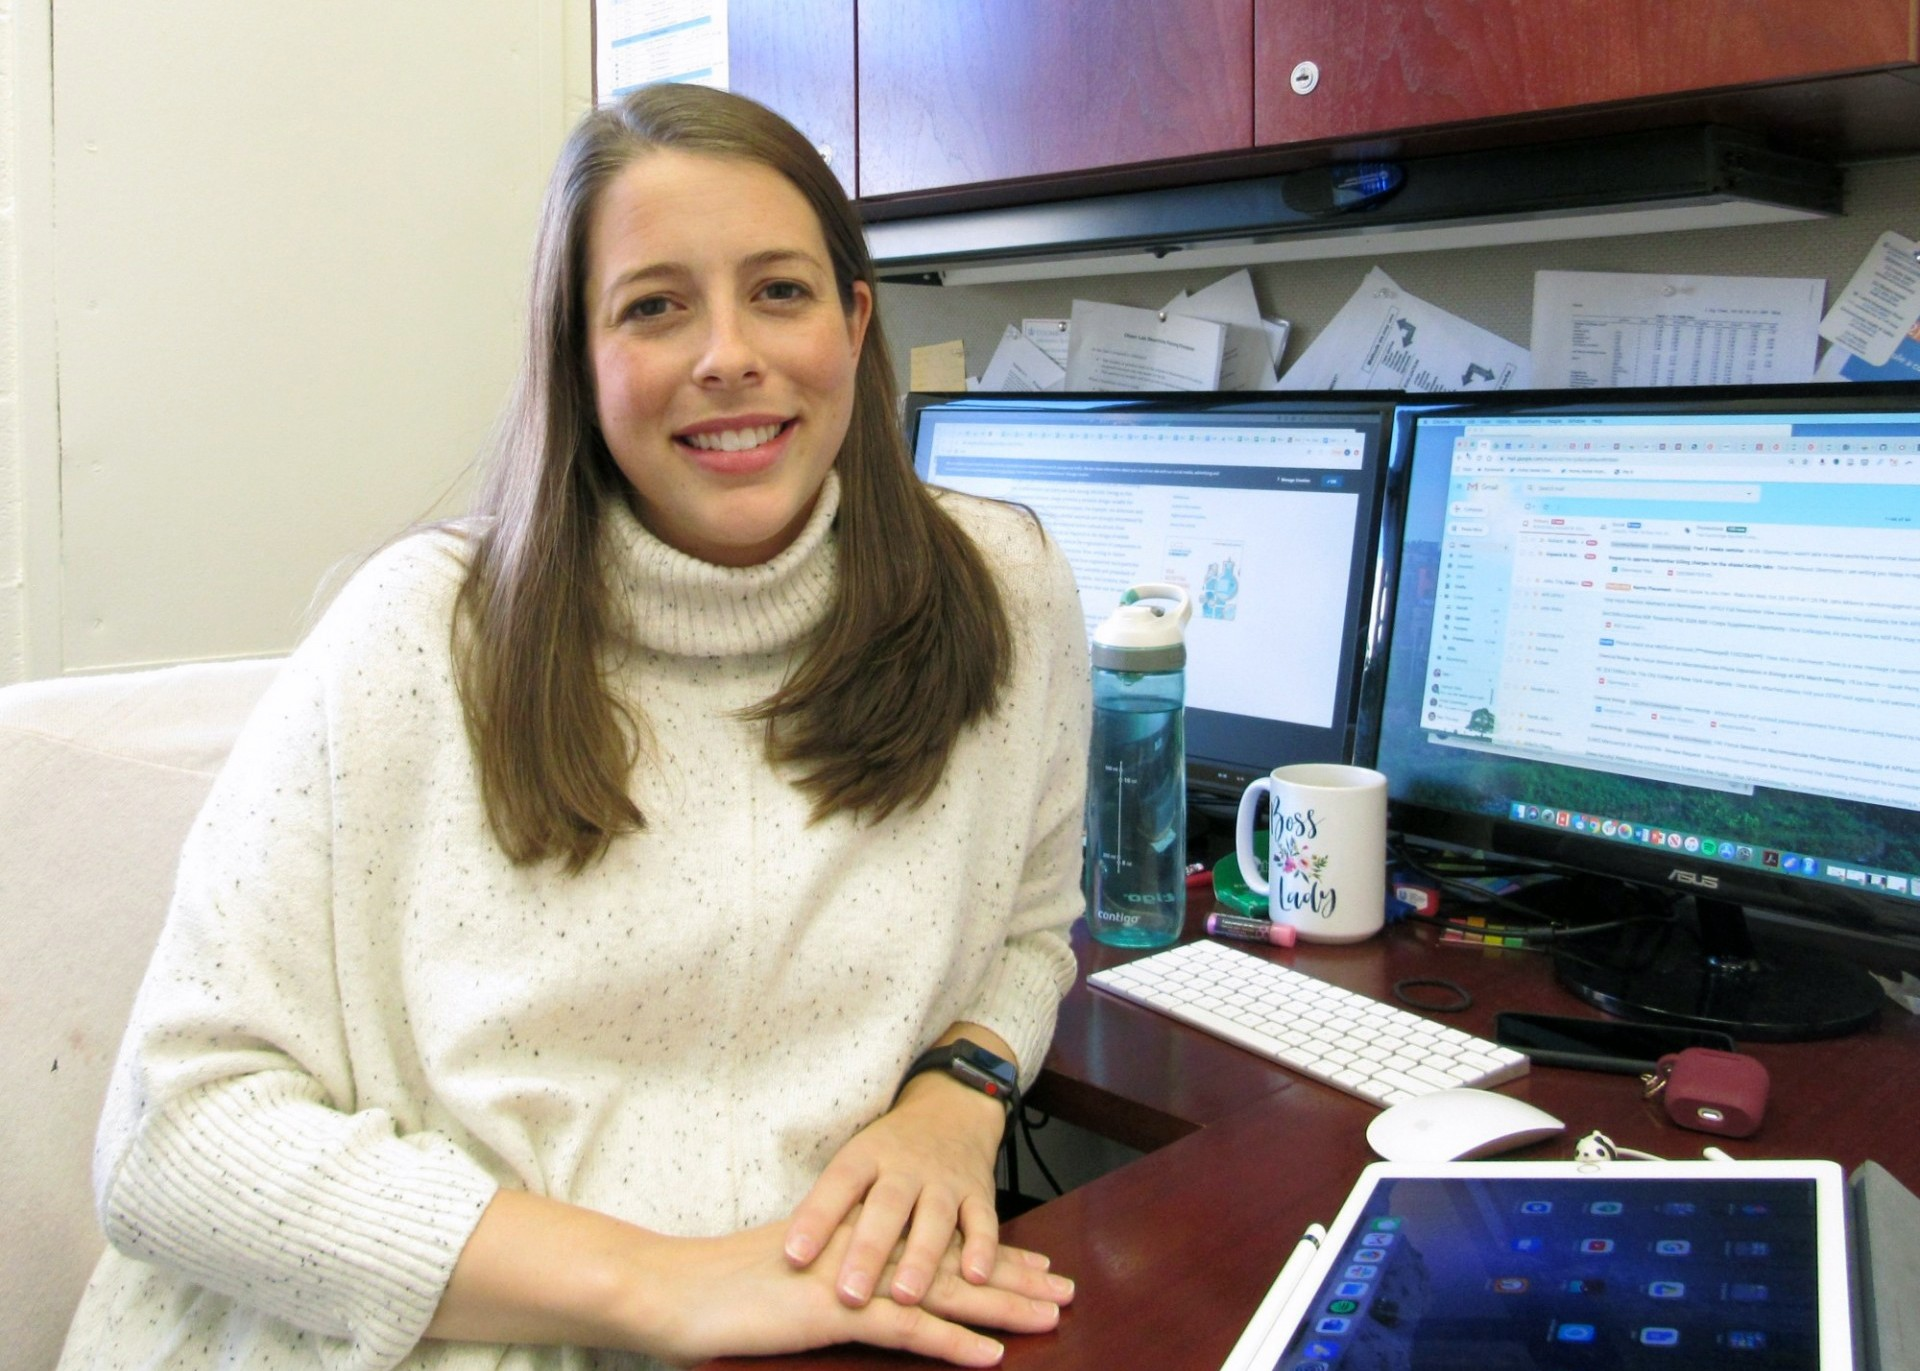 Allie Obermeyer, PhD, sitting at desk in office